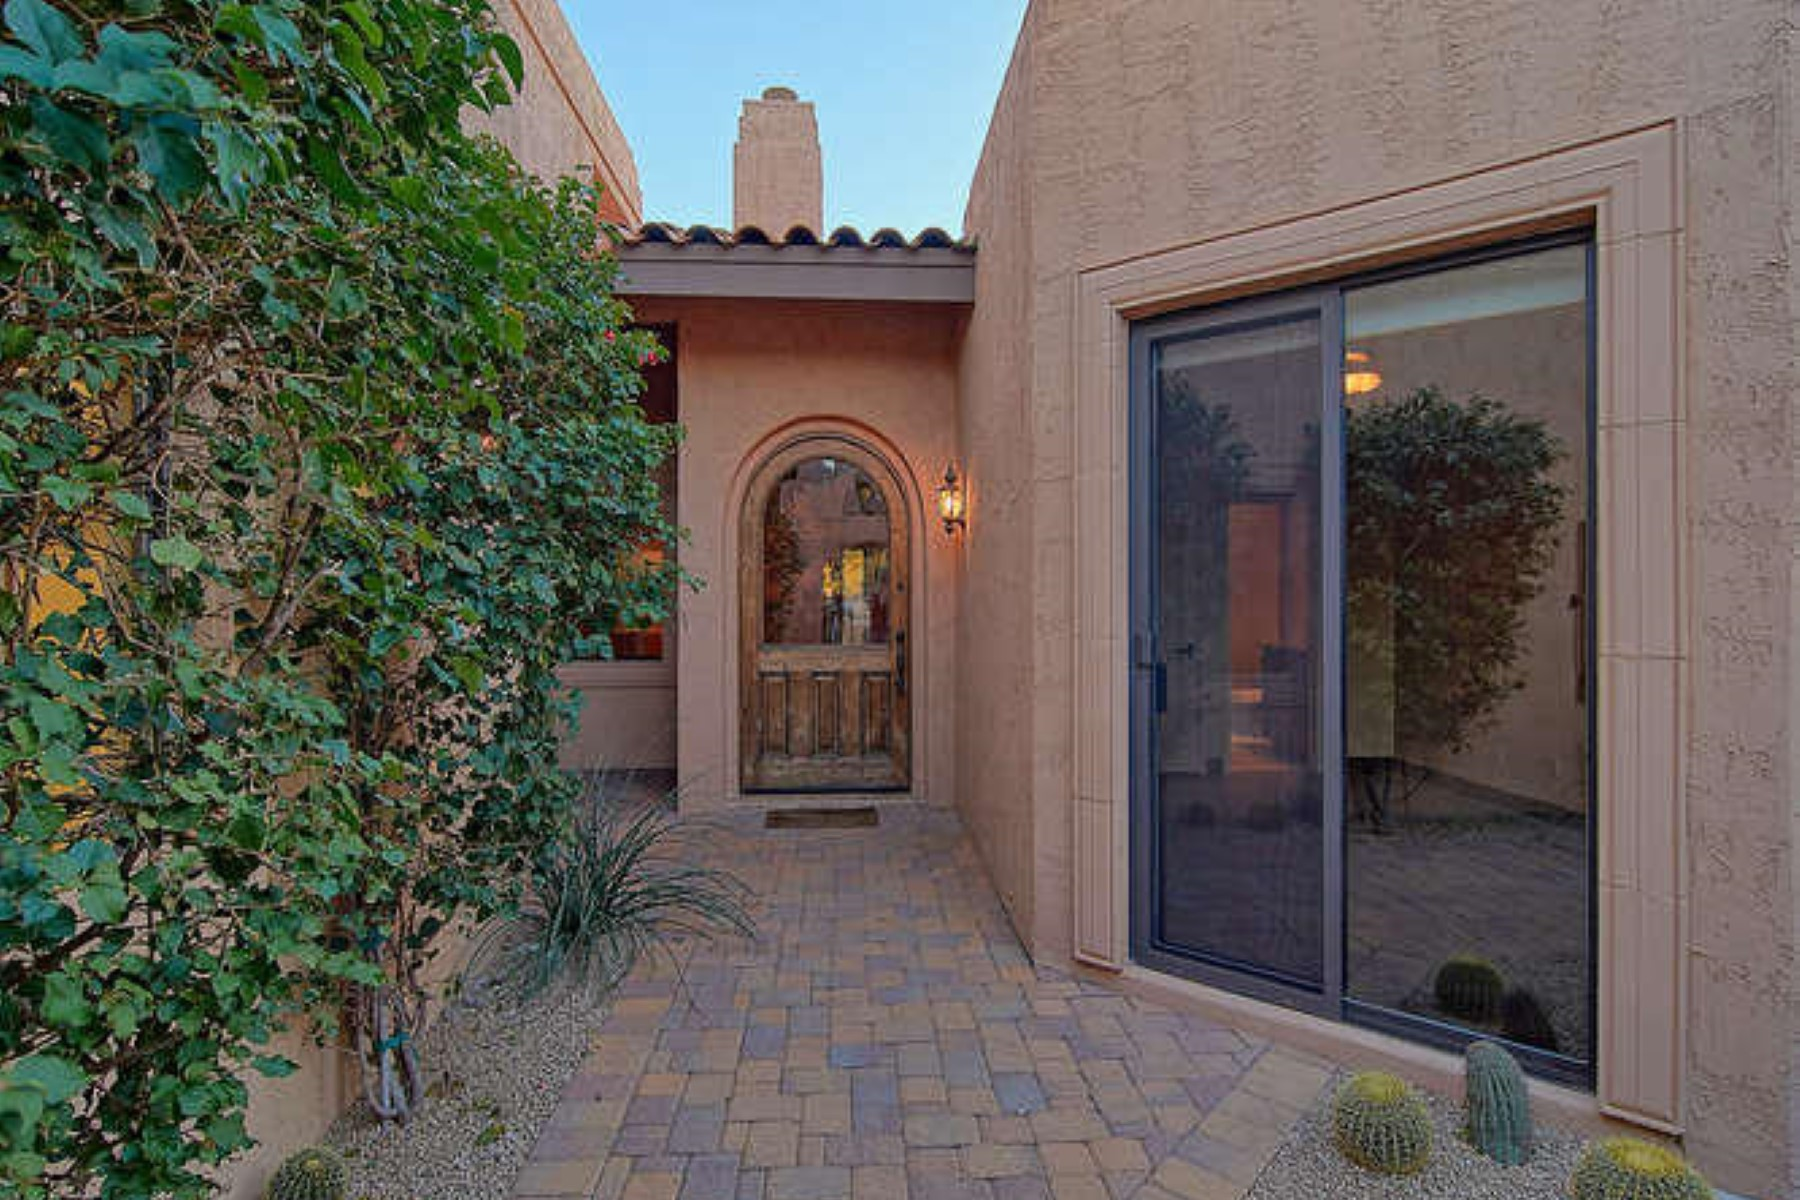 Single Family Home for Sale at Sweeping 10th fairway home with beautiful views 8633 E Paraiso Dr Scottsdale, Arizona, 85255 United States